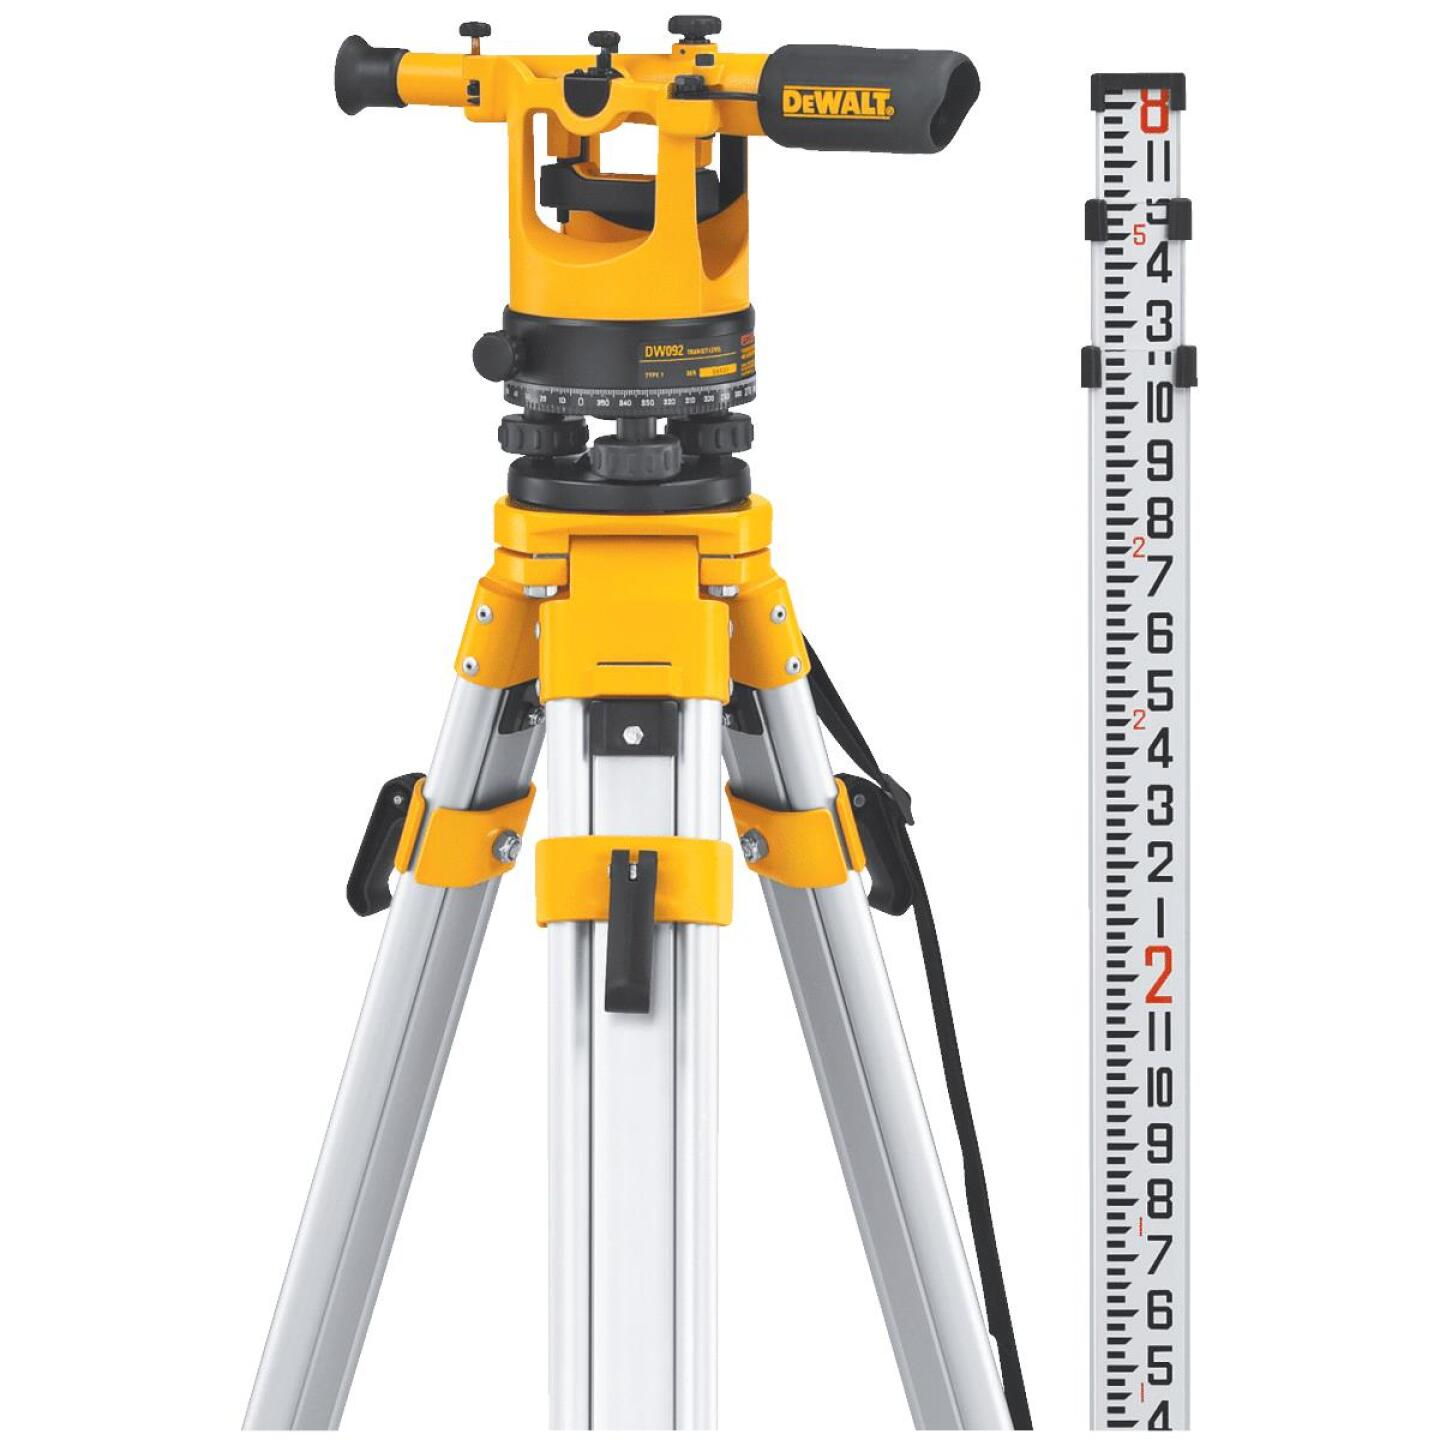 Dewalt 200 ft. Range Transit Level Image 2